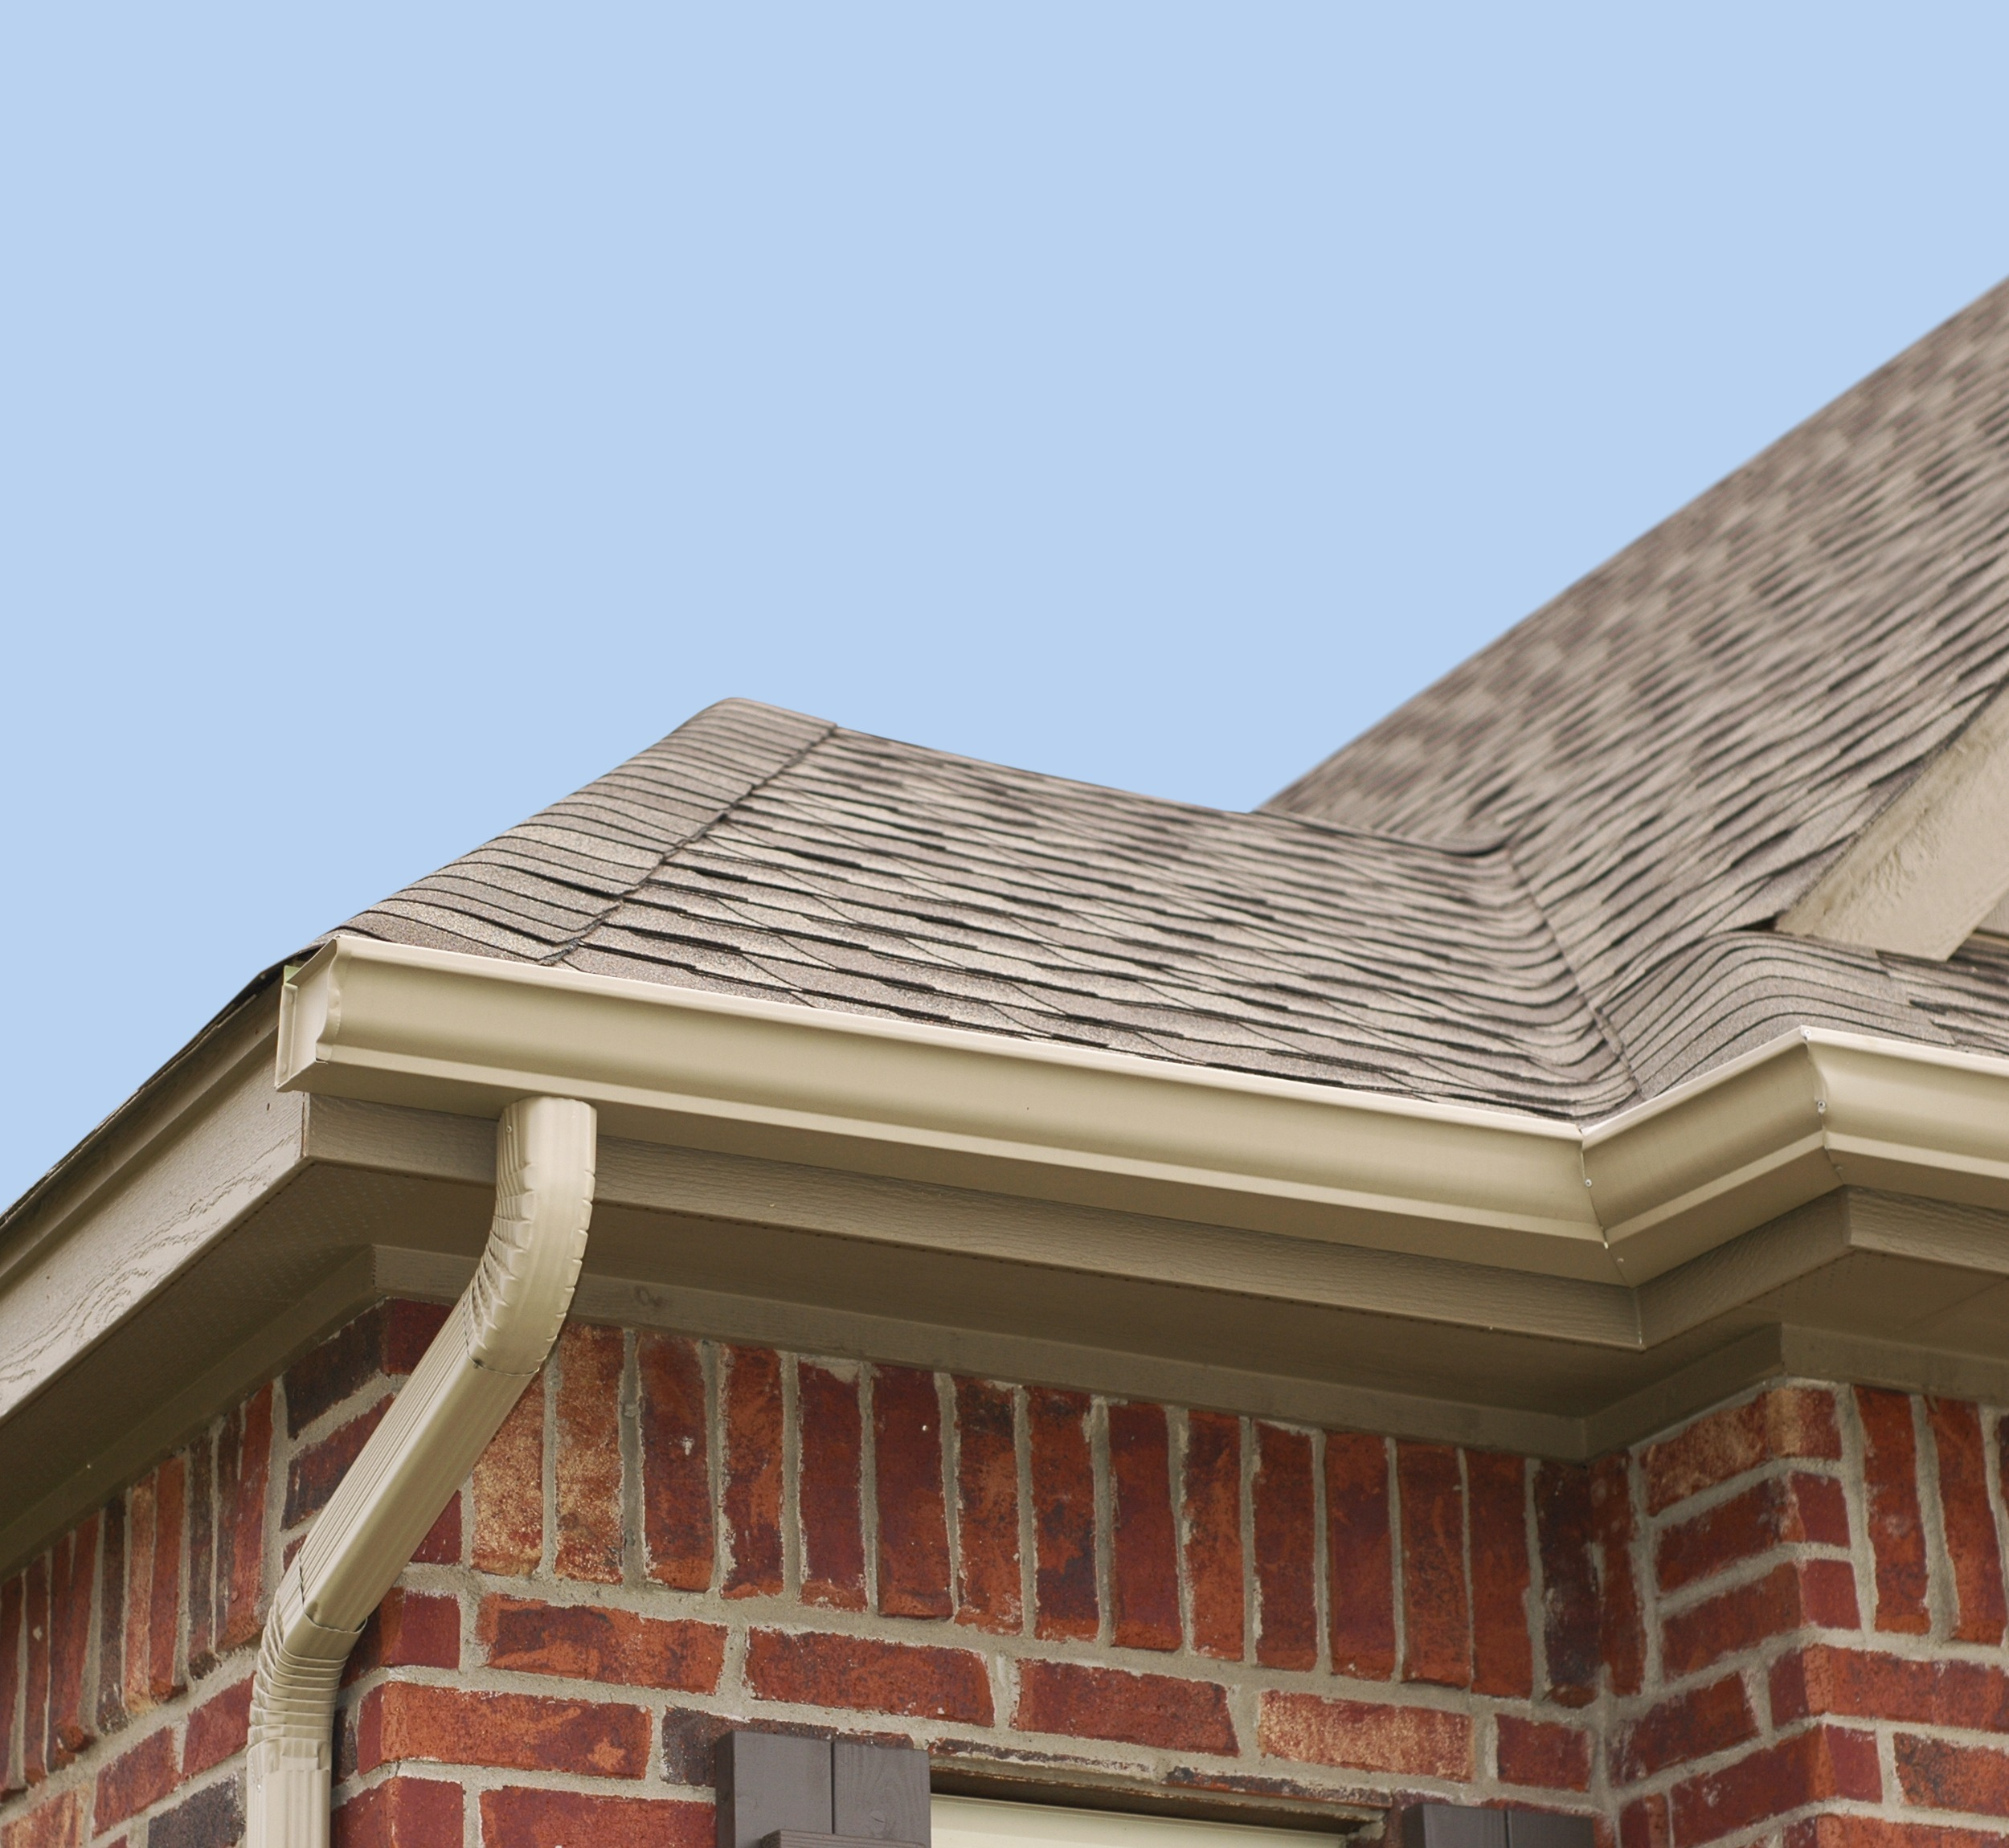 Tan gutters on a house with matching roof colors